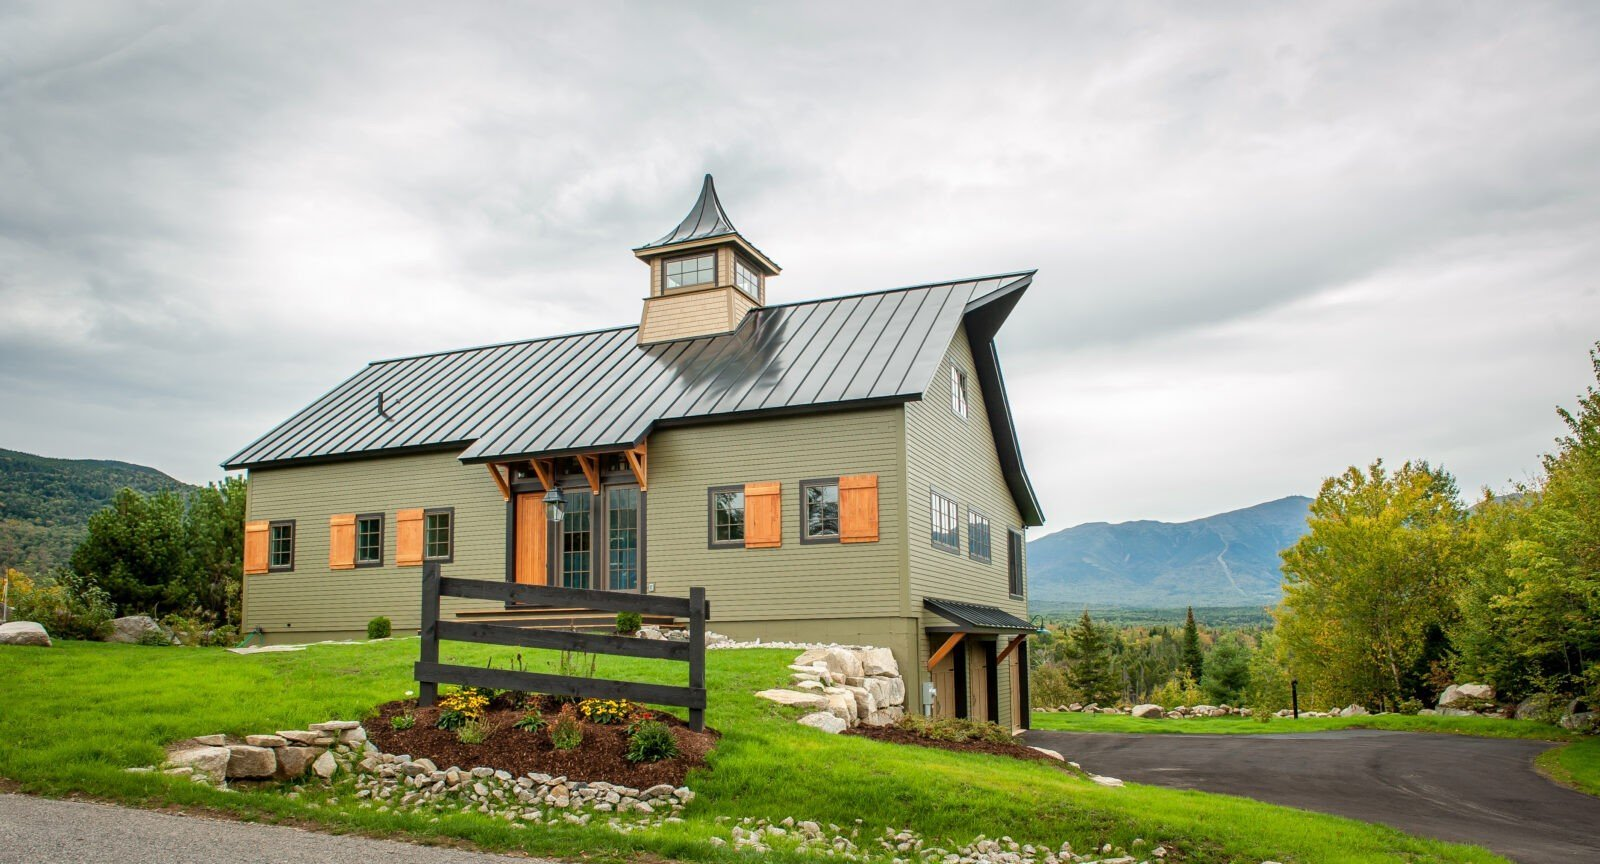 Top notch barn home plans from the ybh design team for Pole barn style home plans